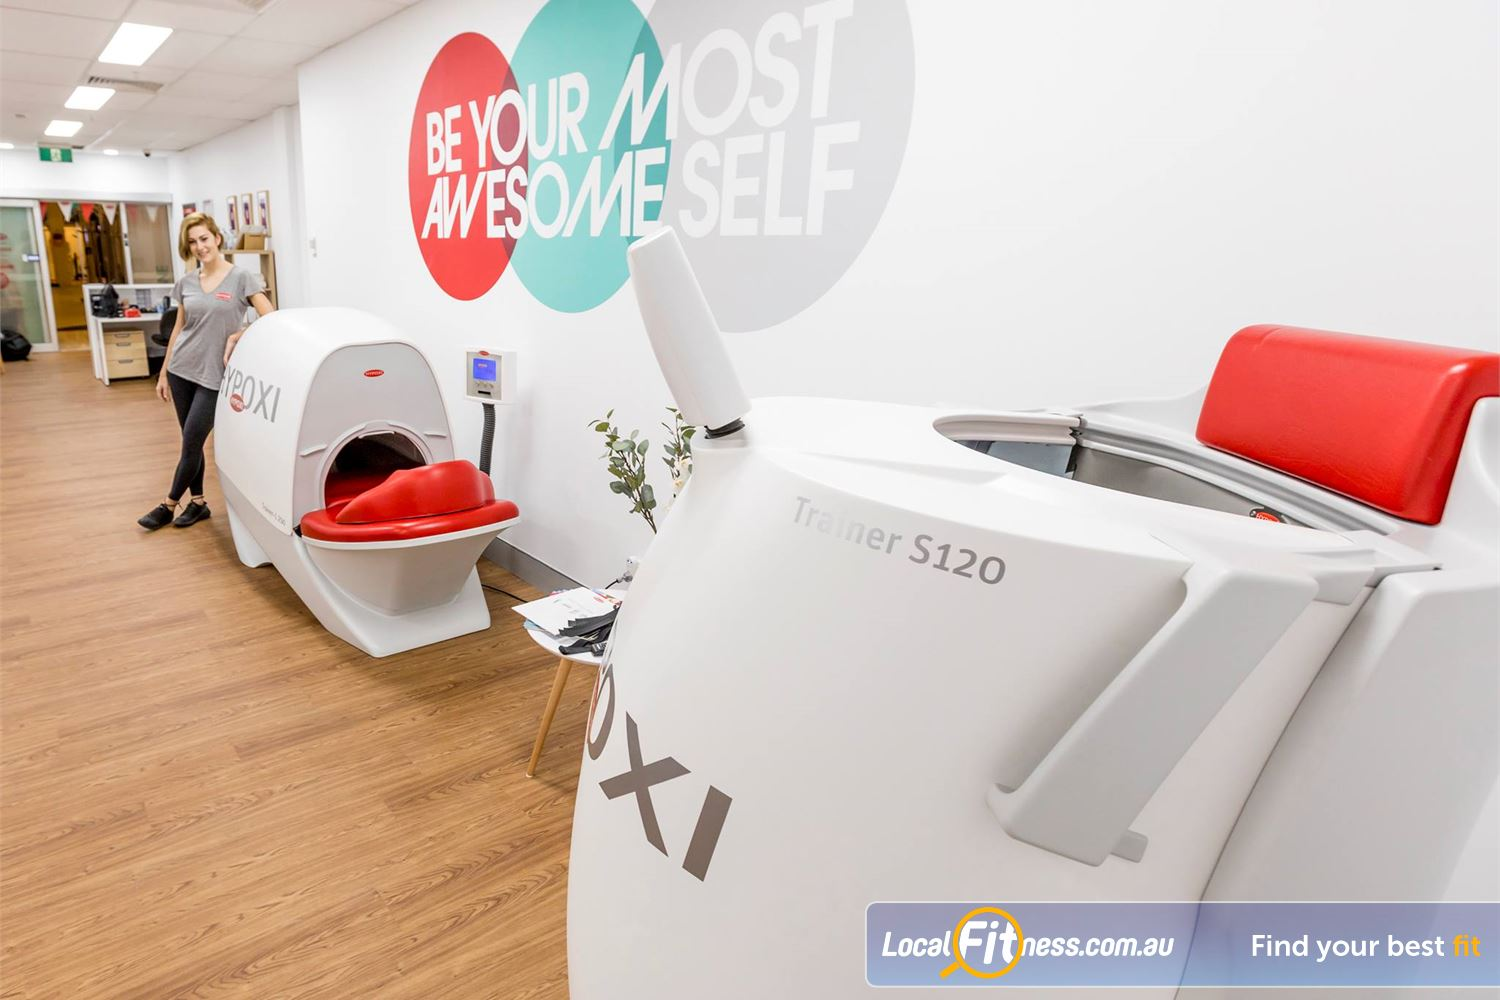 HYPOXI Weight Loss Newtown State of the art and non-invasive and toxin-free treatments for cellulite reduction in Newtown.